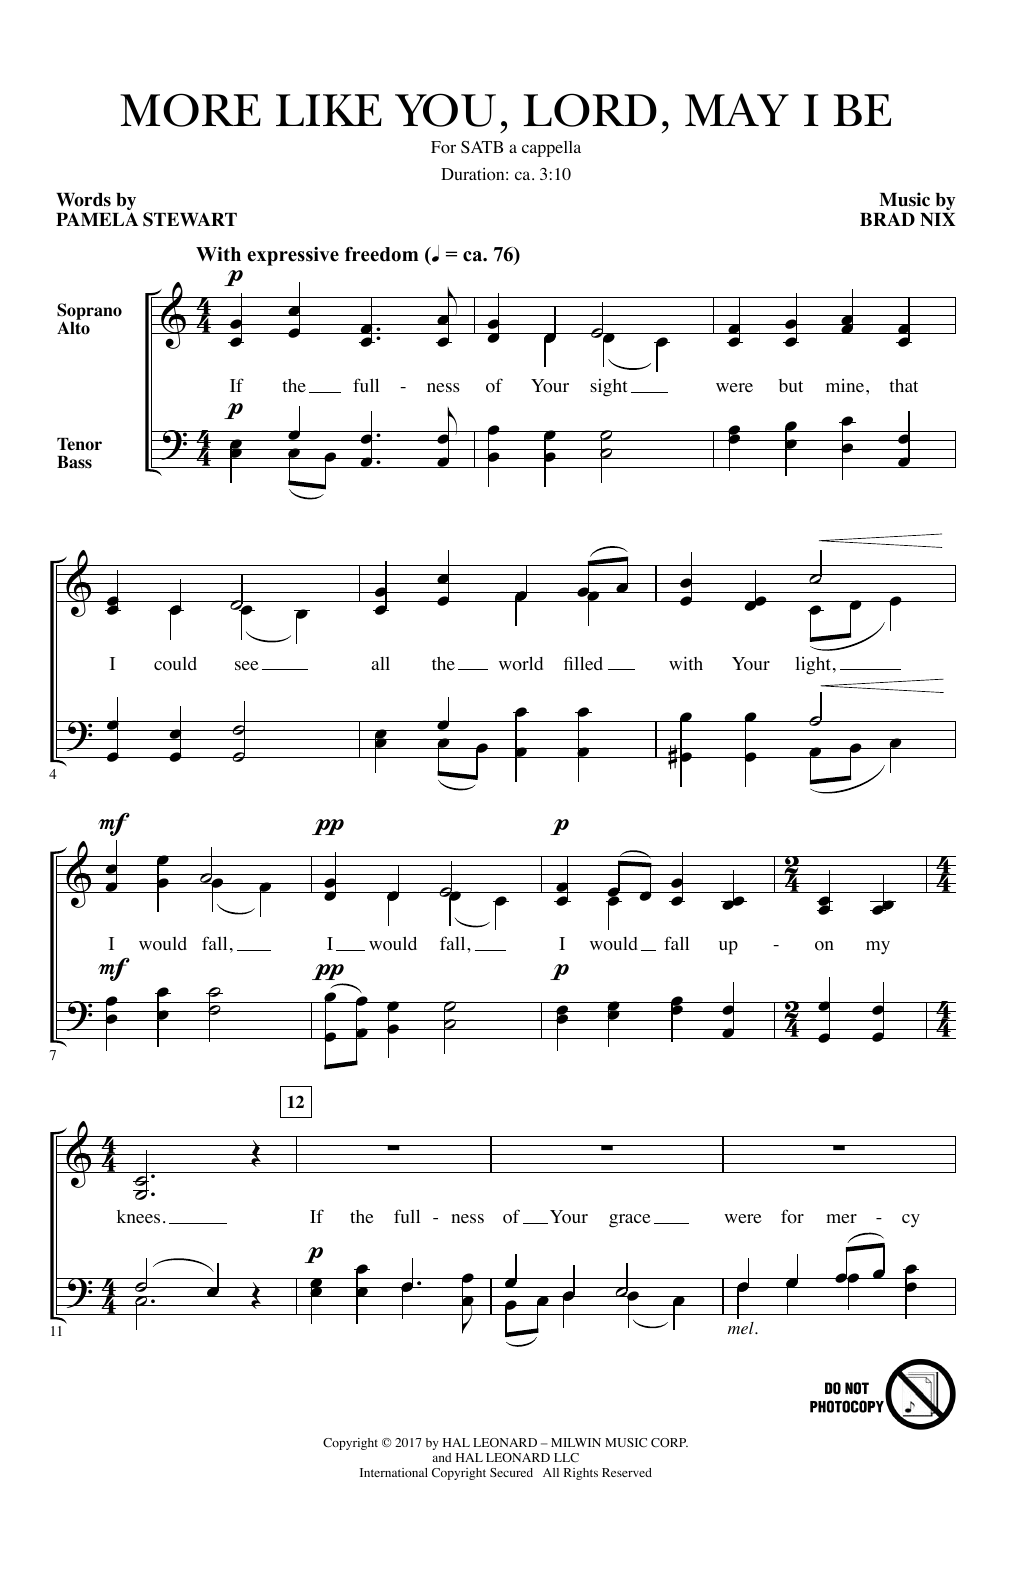 Download Brad Nix 'More Like You, Lord, May I Be' Digital Sheet Music Notes & Chords and start playing in minutes